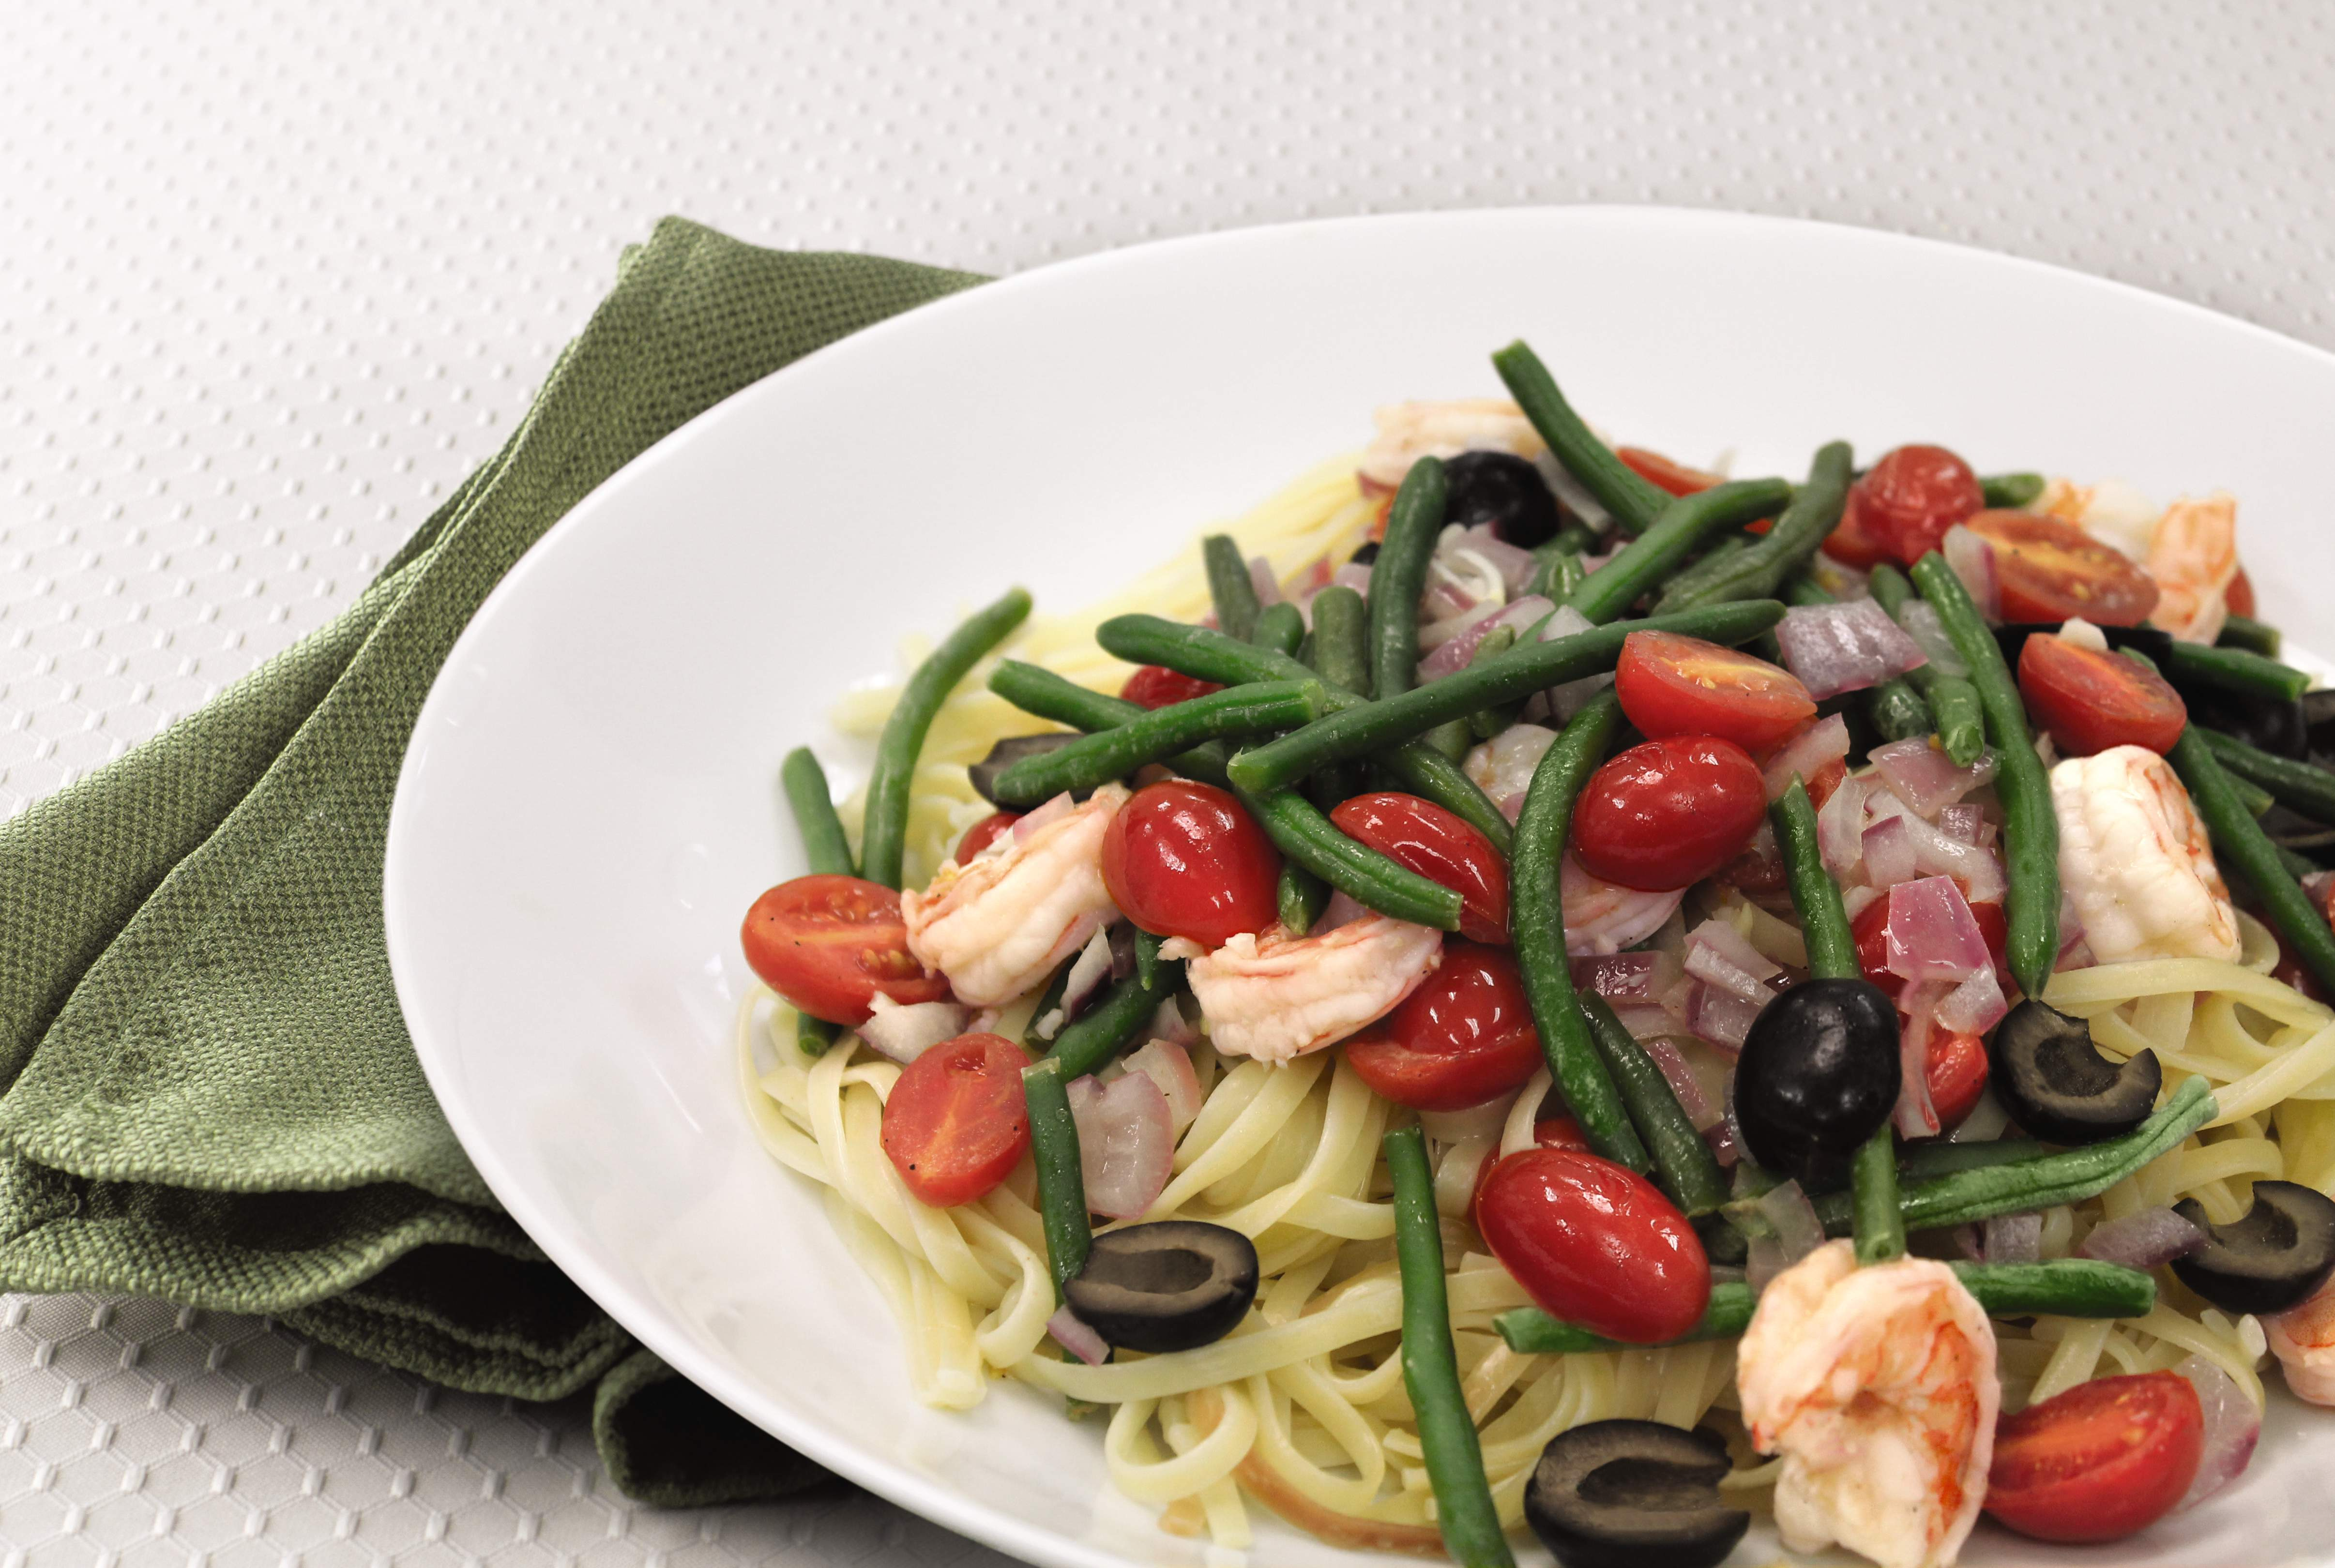 Shrimp nicoise pasta with tomatoes, black olives, and green beans.